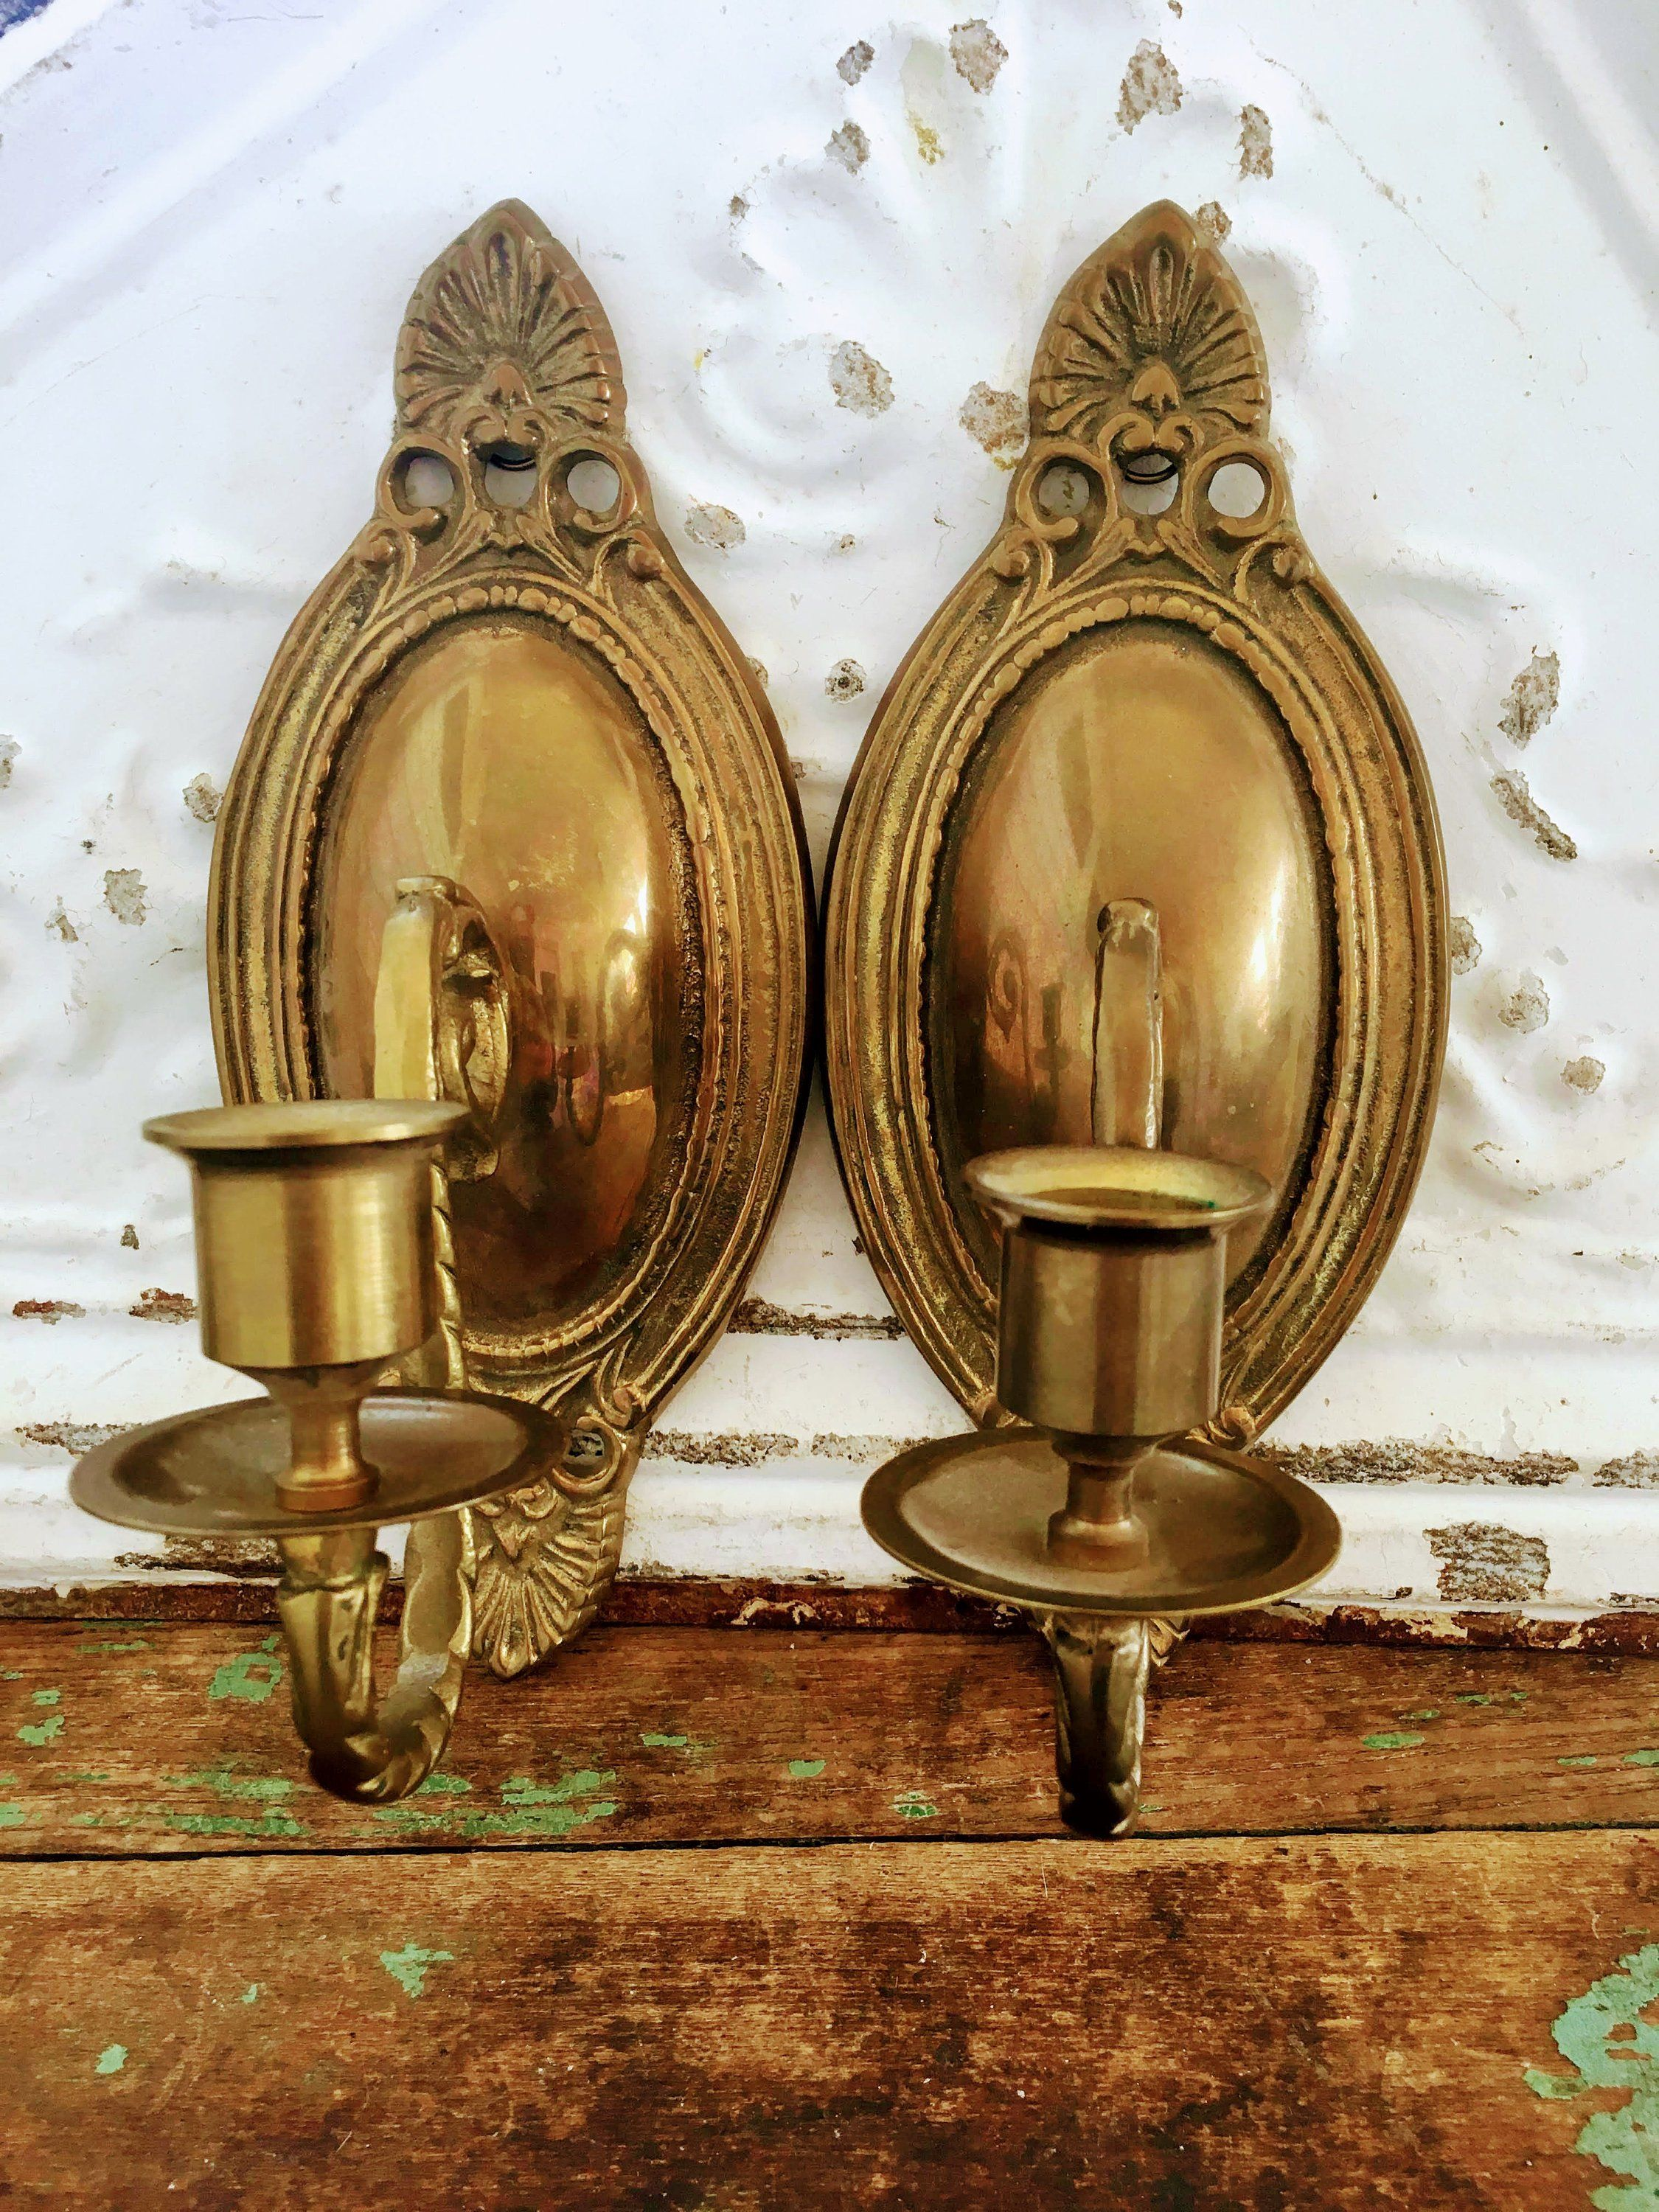 Antique 2 Art Deco Brass Candle Holder wall Sconces Clam ... on Vintage Wall Sconce Candle Holder Decorating Ideas id=63672